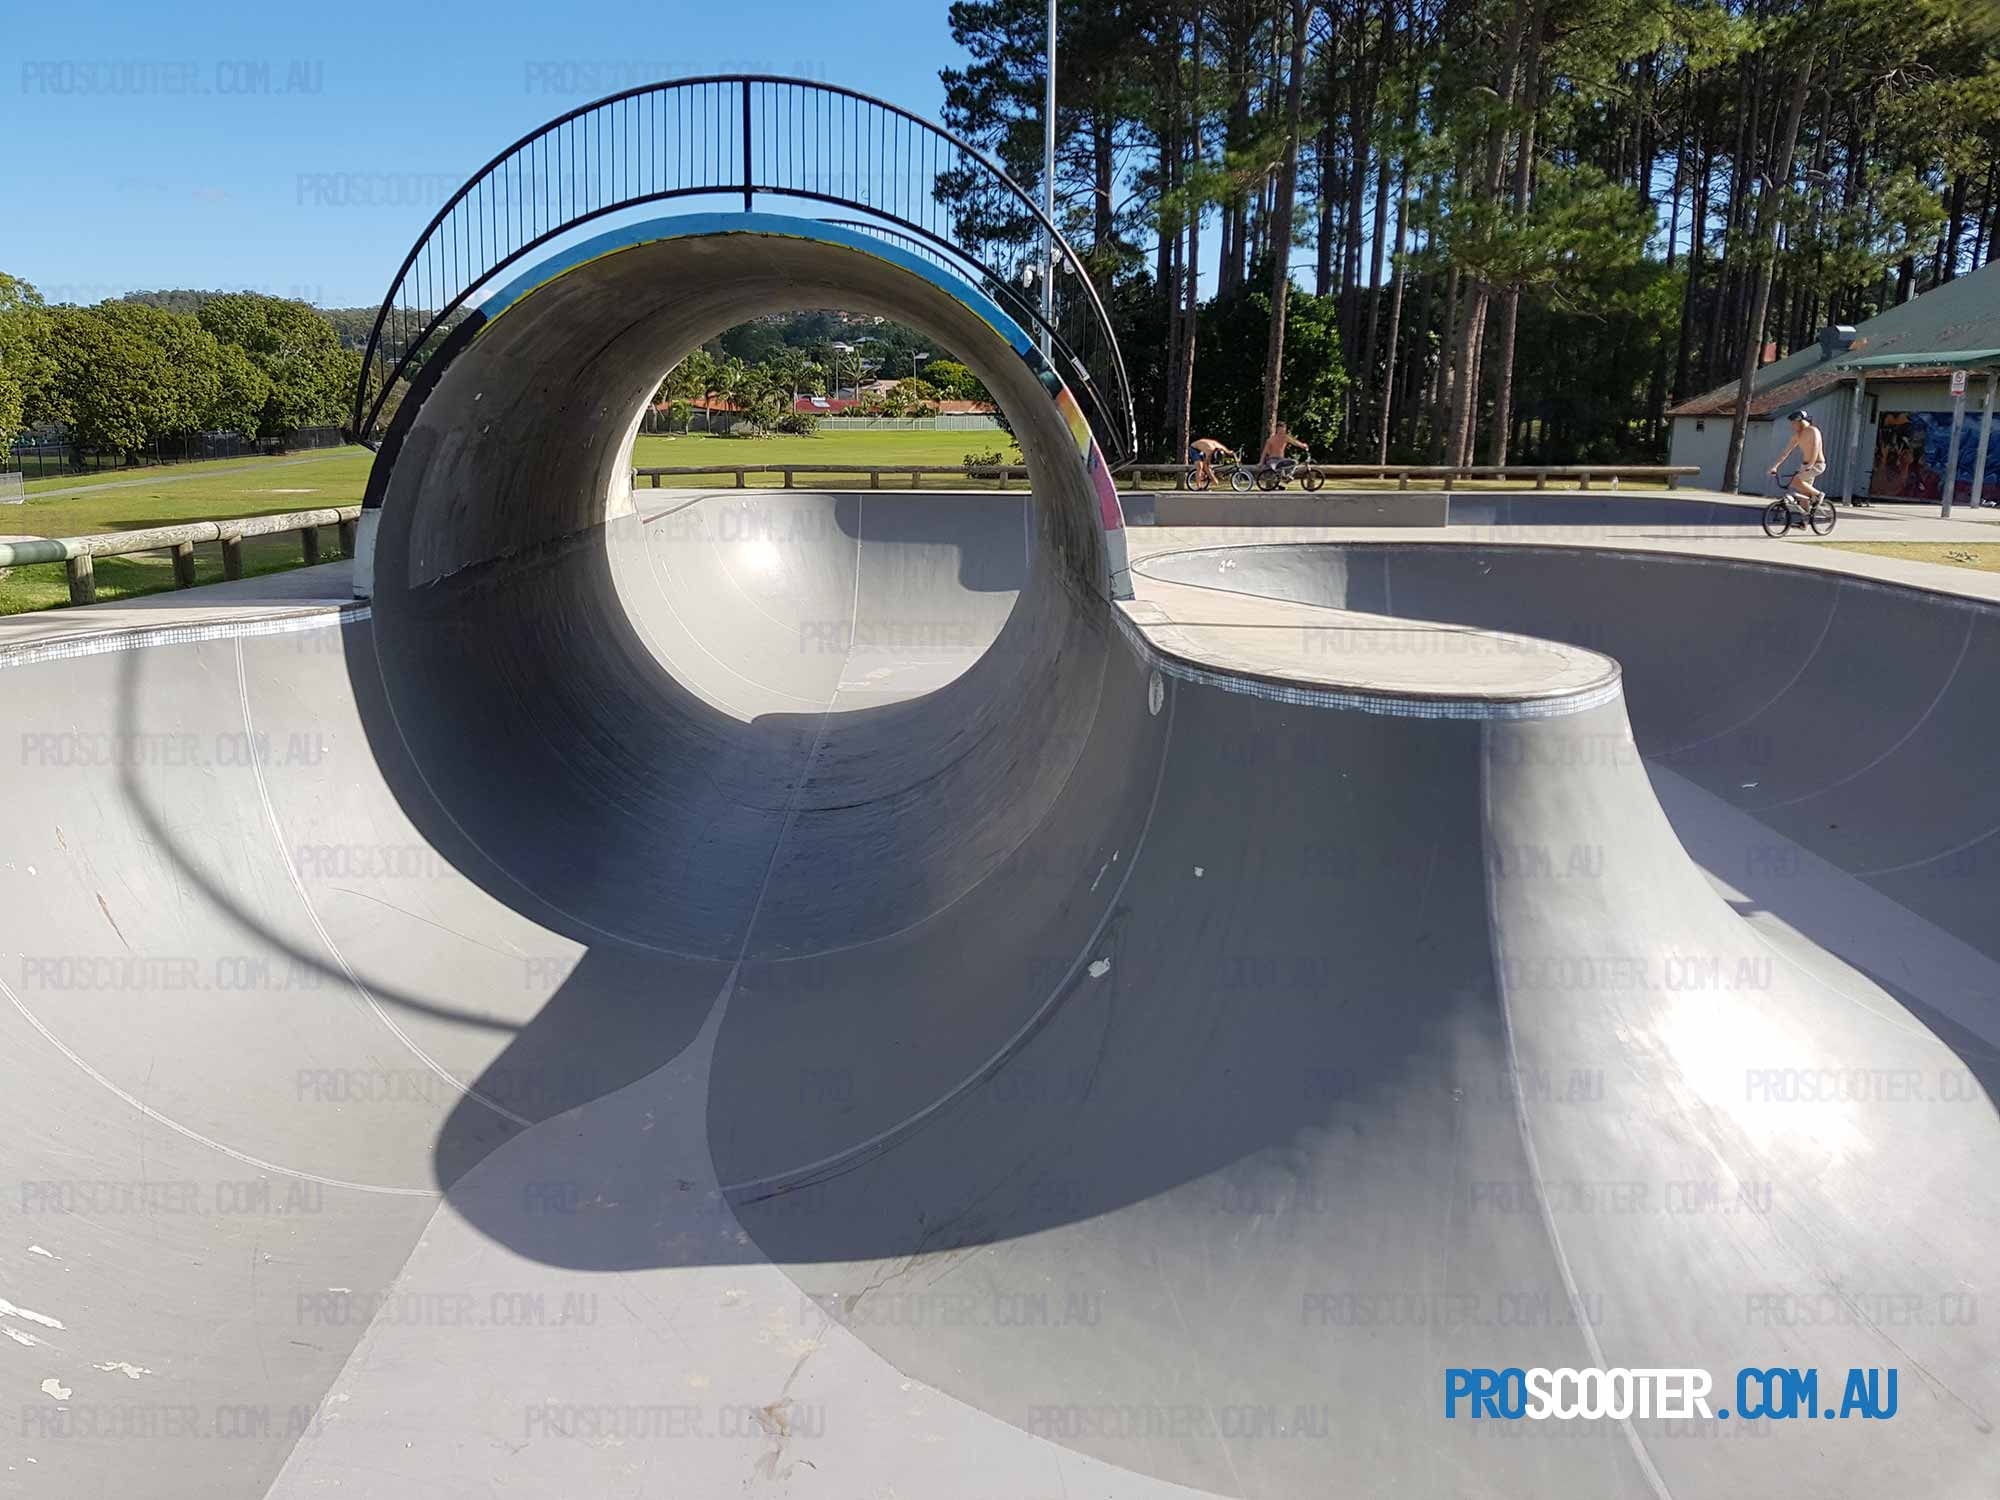 Elanora Skate Park Full Pipe from corner